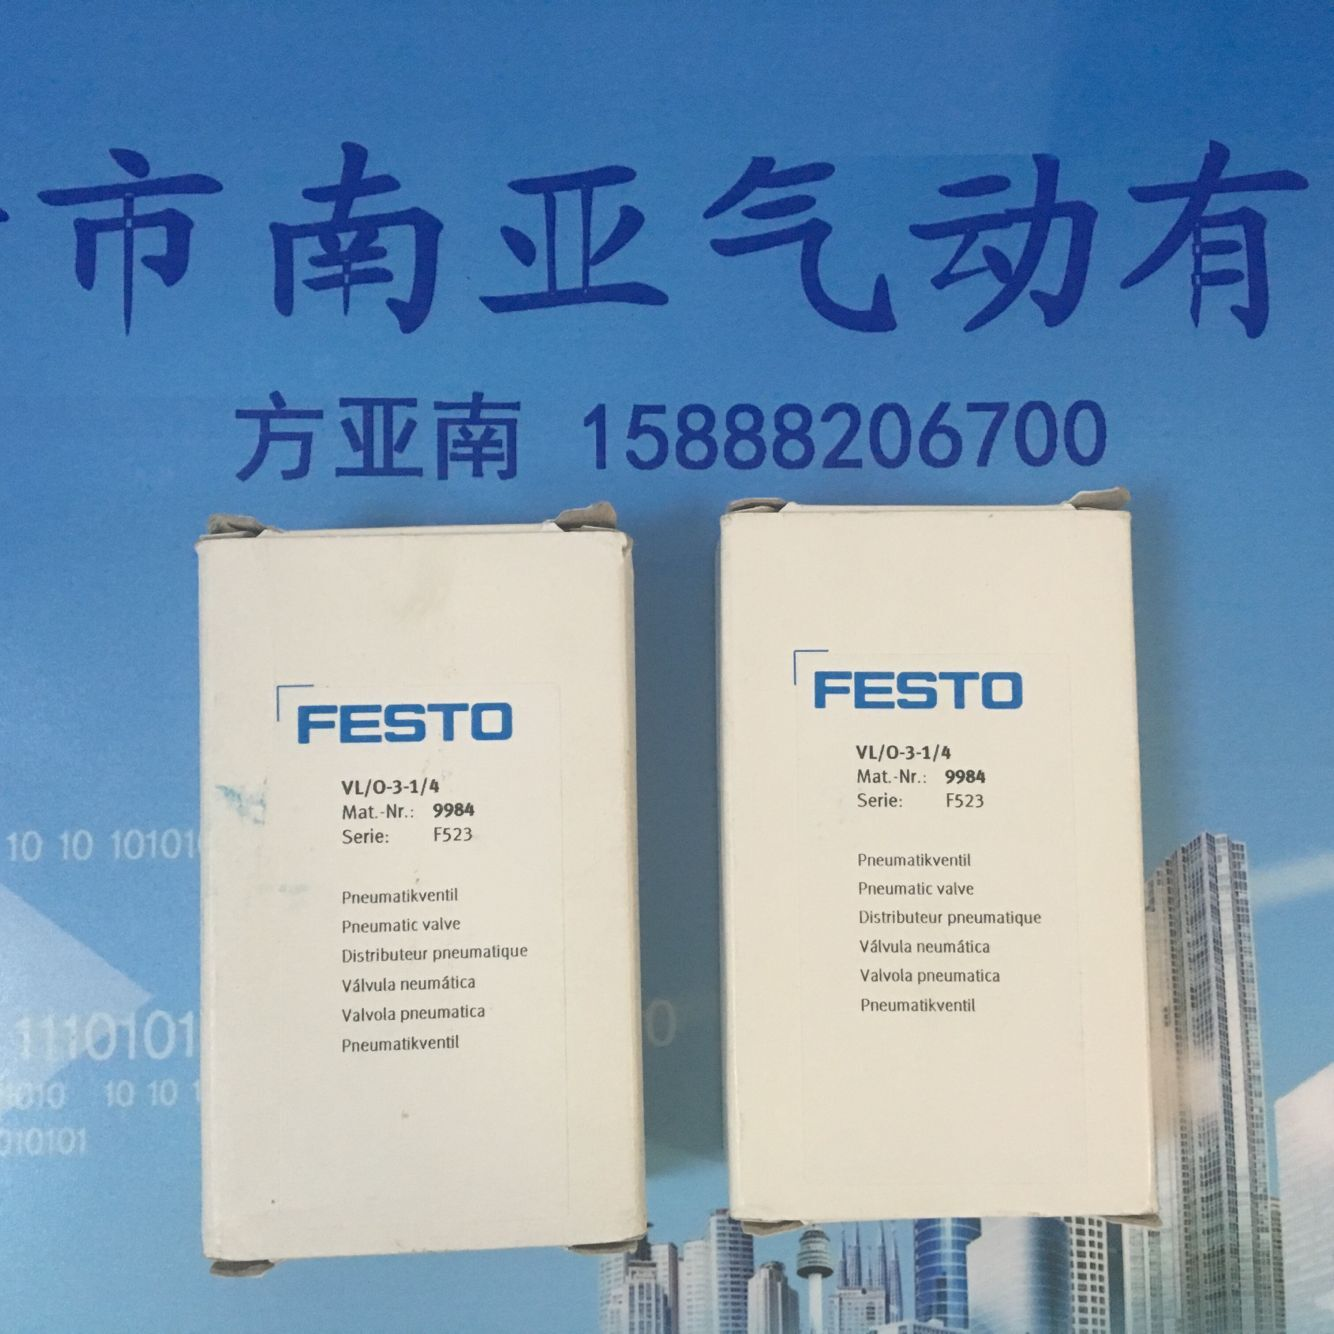 New original authentic Festo solenoid valves VL/O-3-1/4 книга для детей clever я ищу цвета